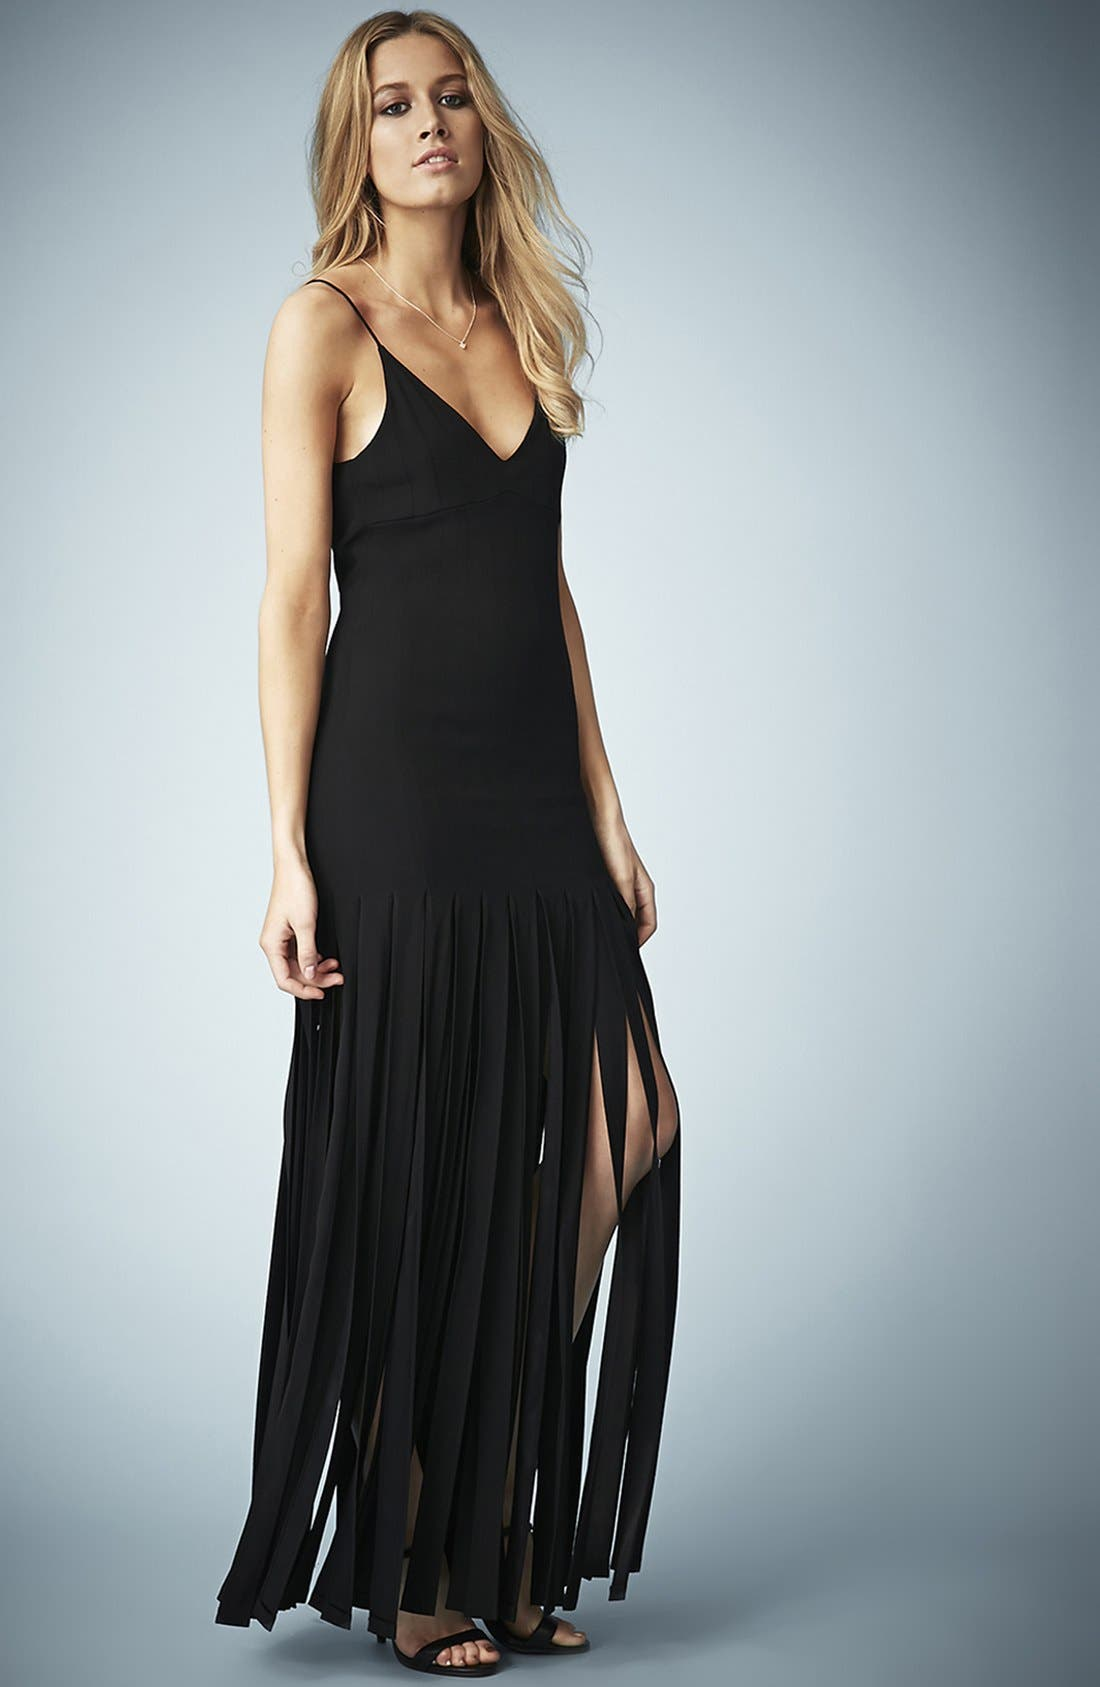 Kate Moss for Topshop Splice Skirt Maxi Dress,                         Main,                         color,